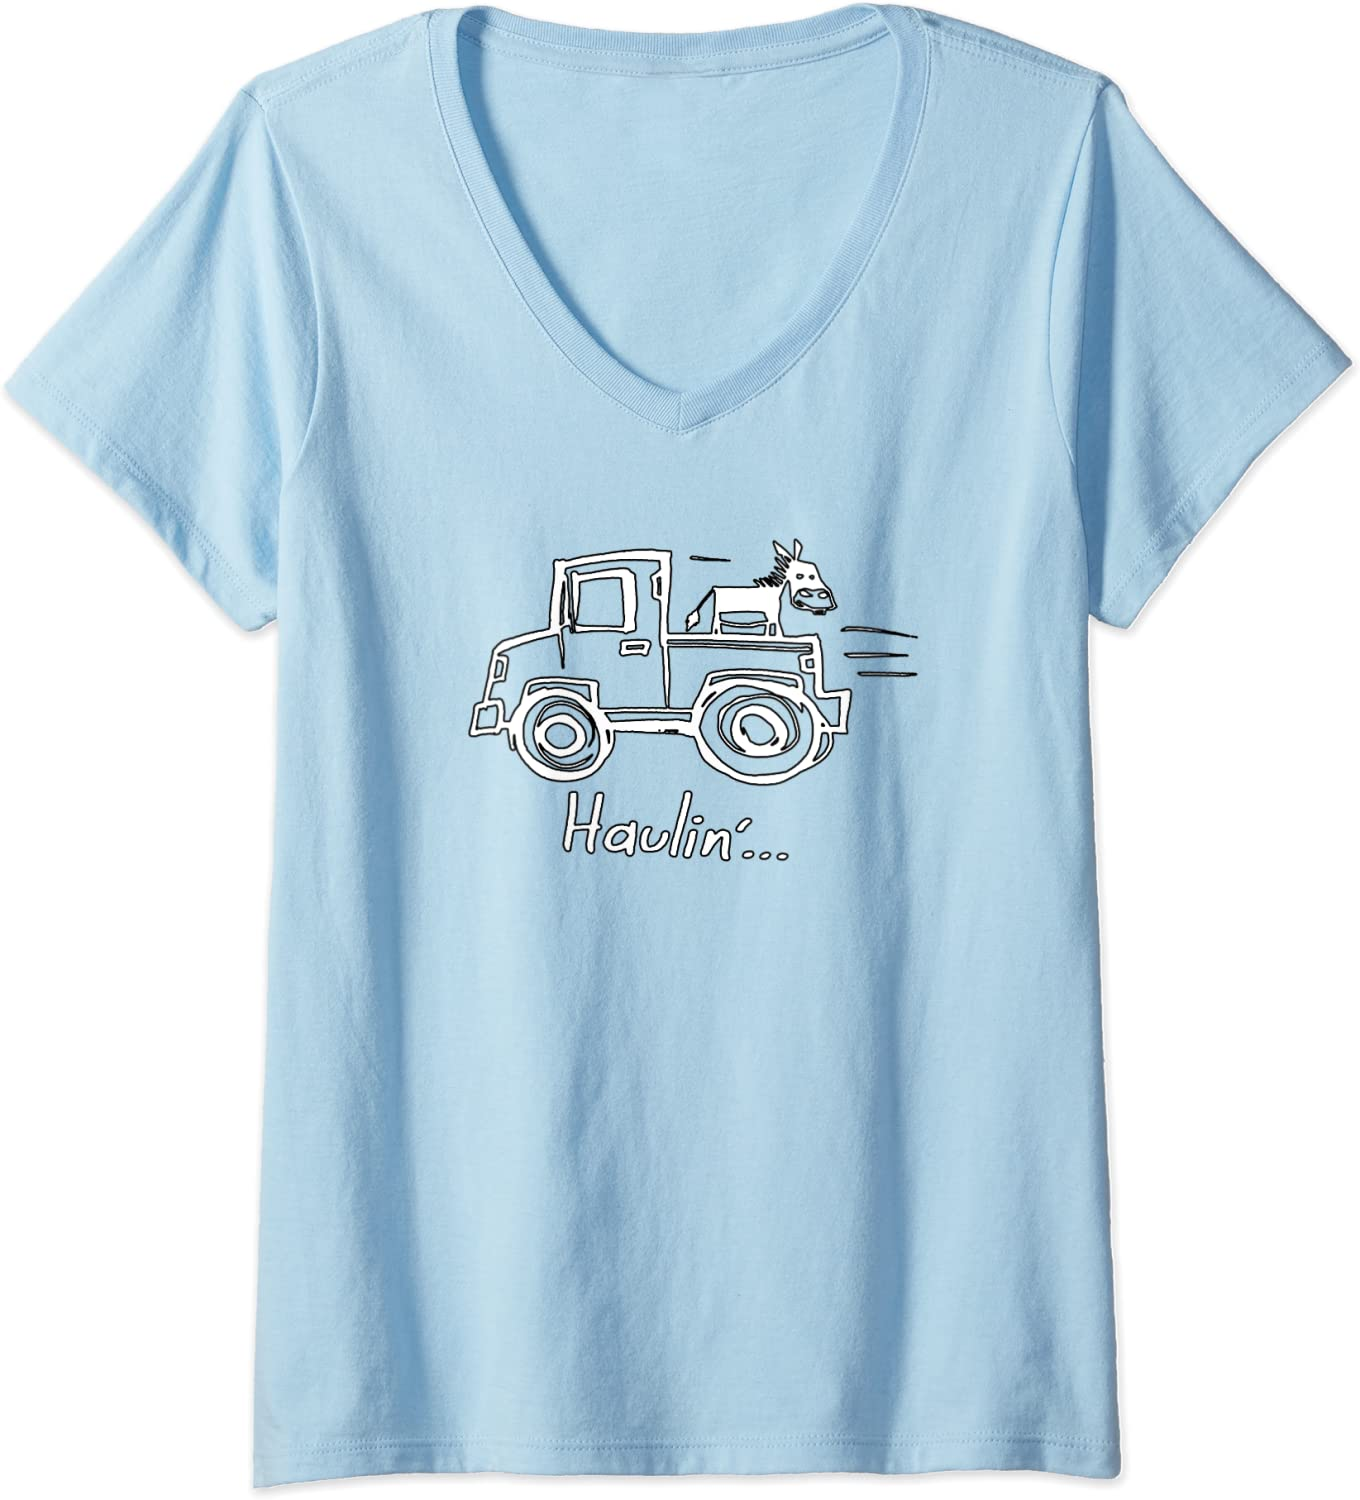 Soft Shirt Unisex Sizing BFF gift for her Haulin/' Ass Funny Donkey Vintage Pick Up Truck T-Shirt